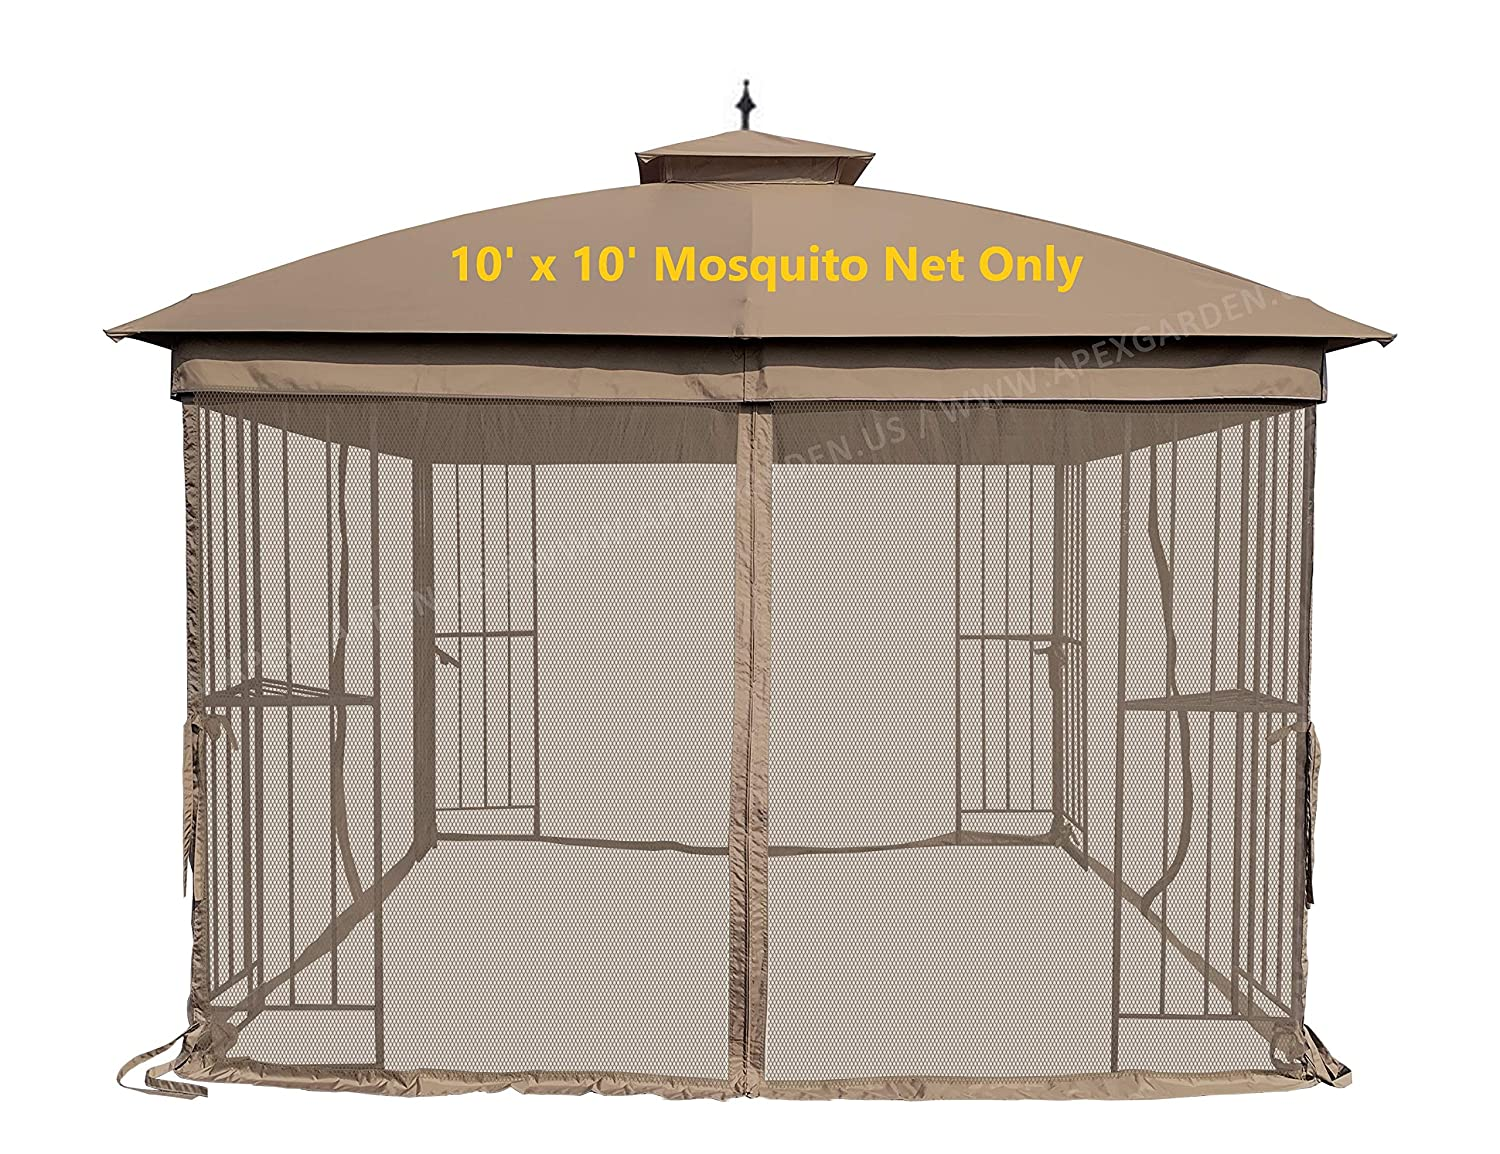 APEX GARDEN Universal 10' x 10' Gazebo Replacement Mosquito Netting (Mosquito Net Only, Size: 10 ft x 10 ft)